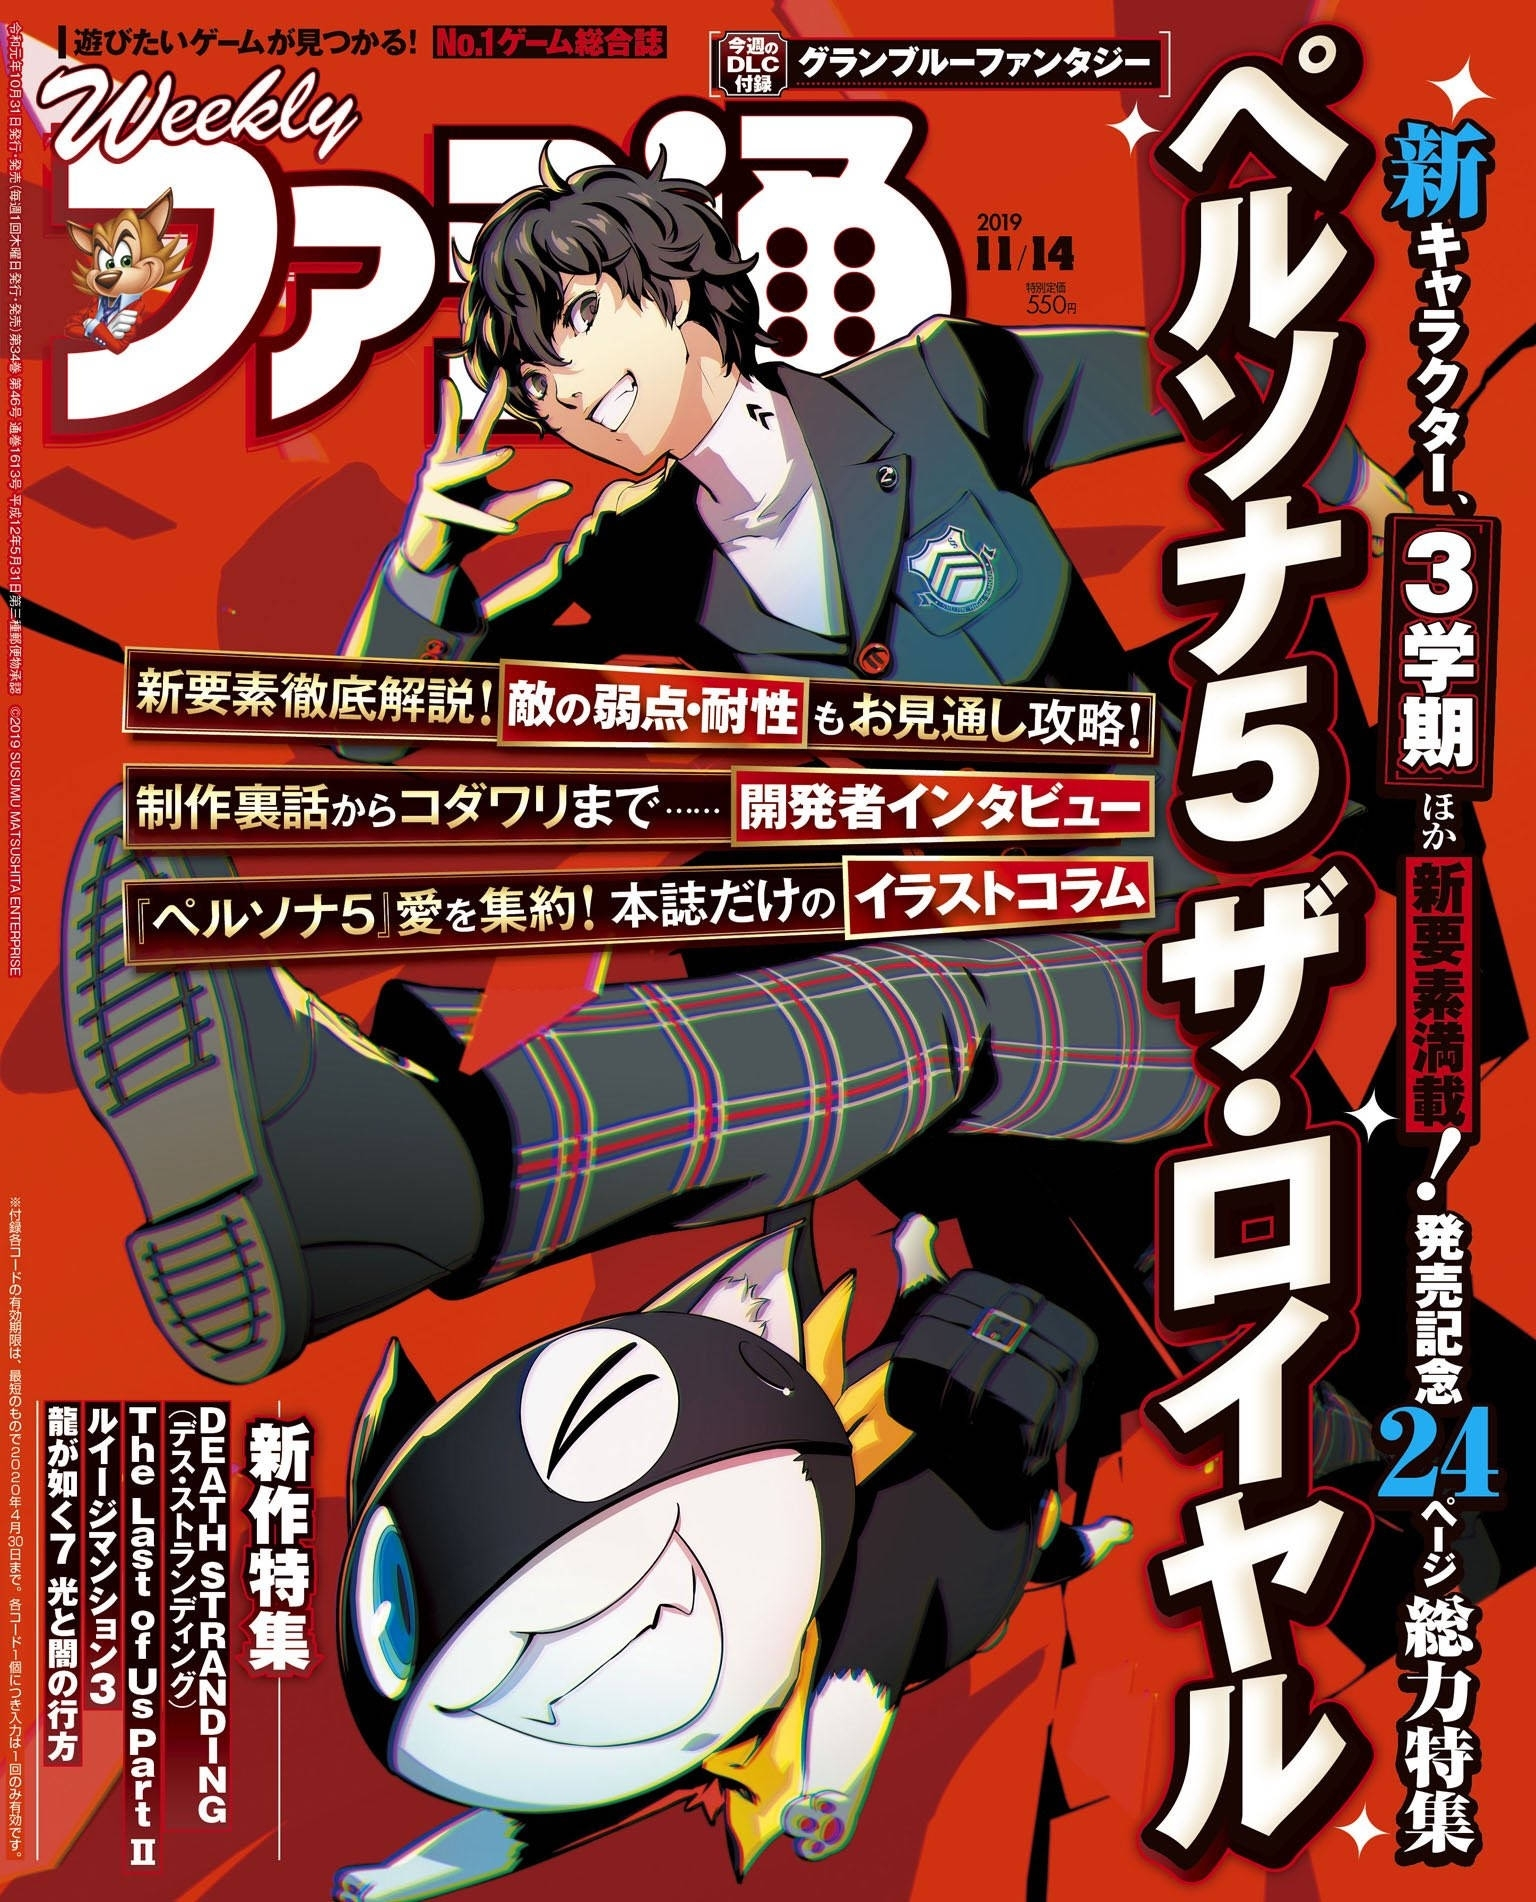 Persona 5 Royal Featured On Weekly Famitsu Magazine Issue